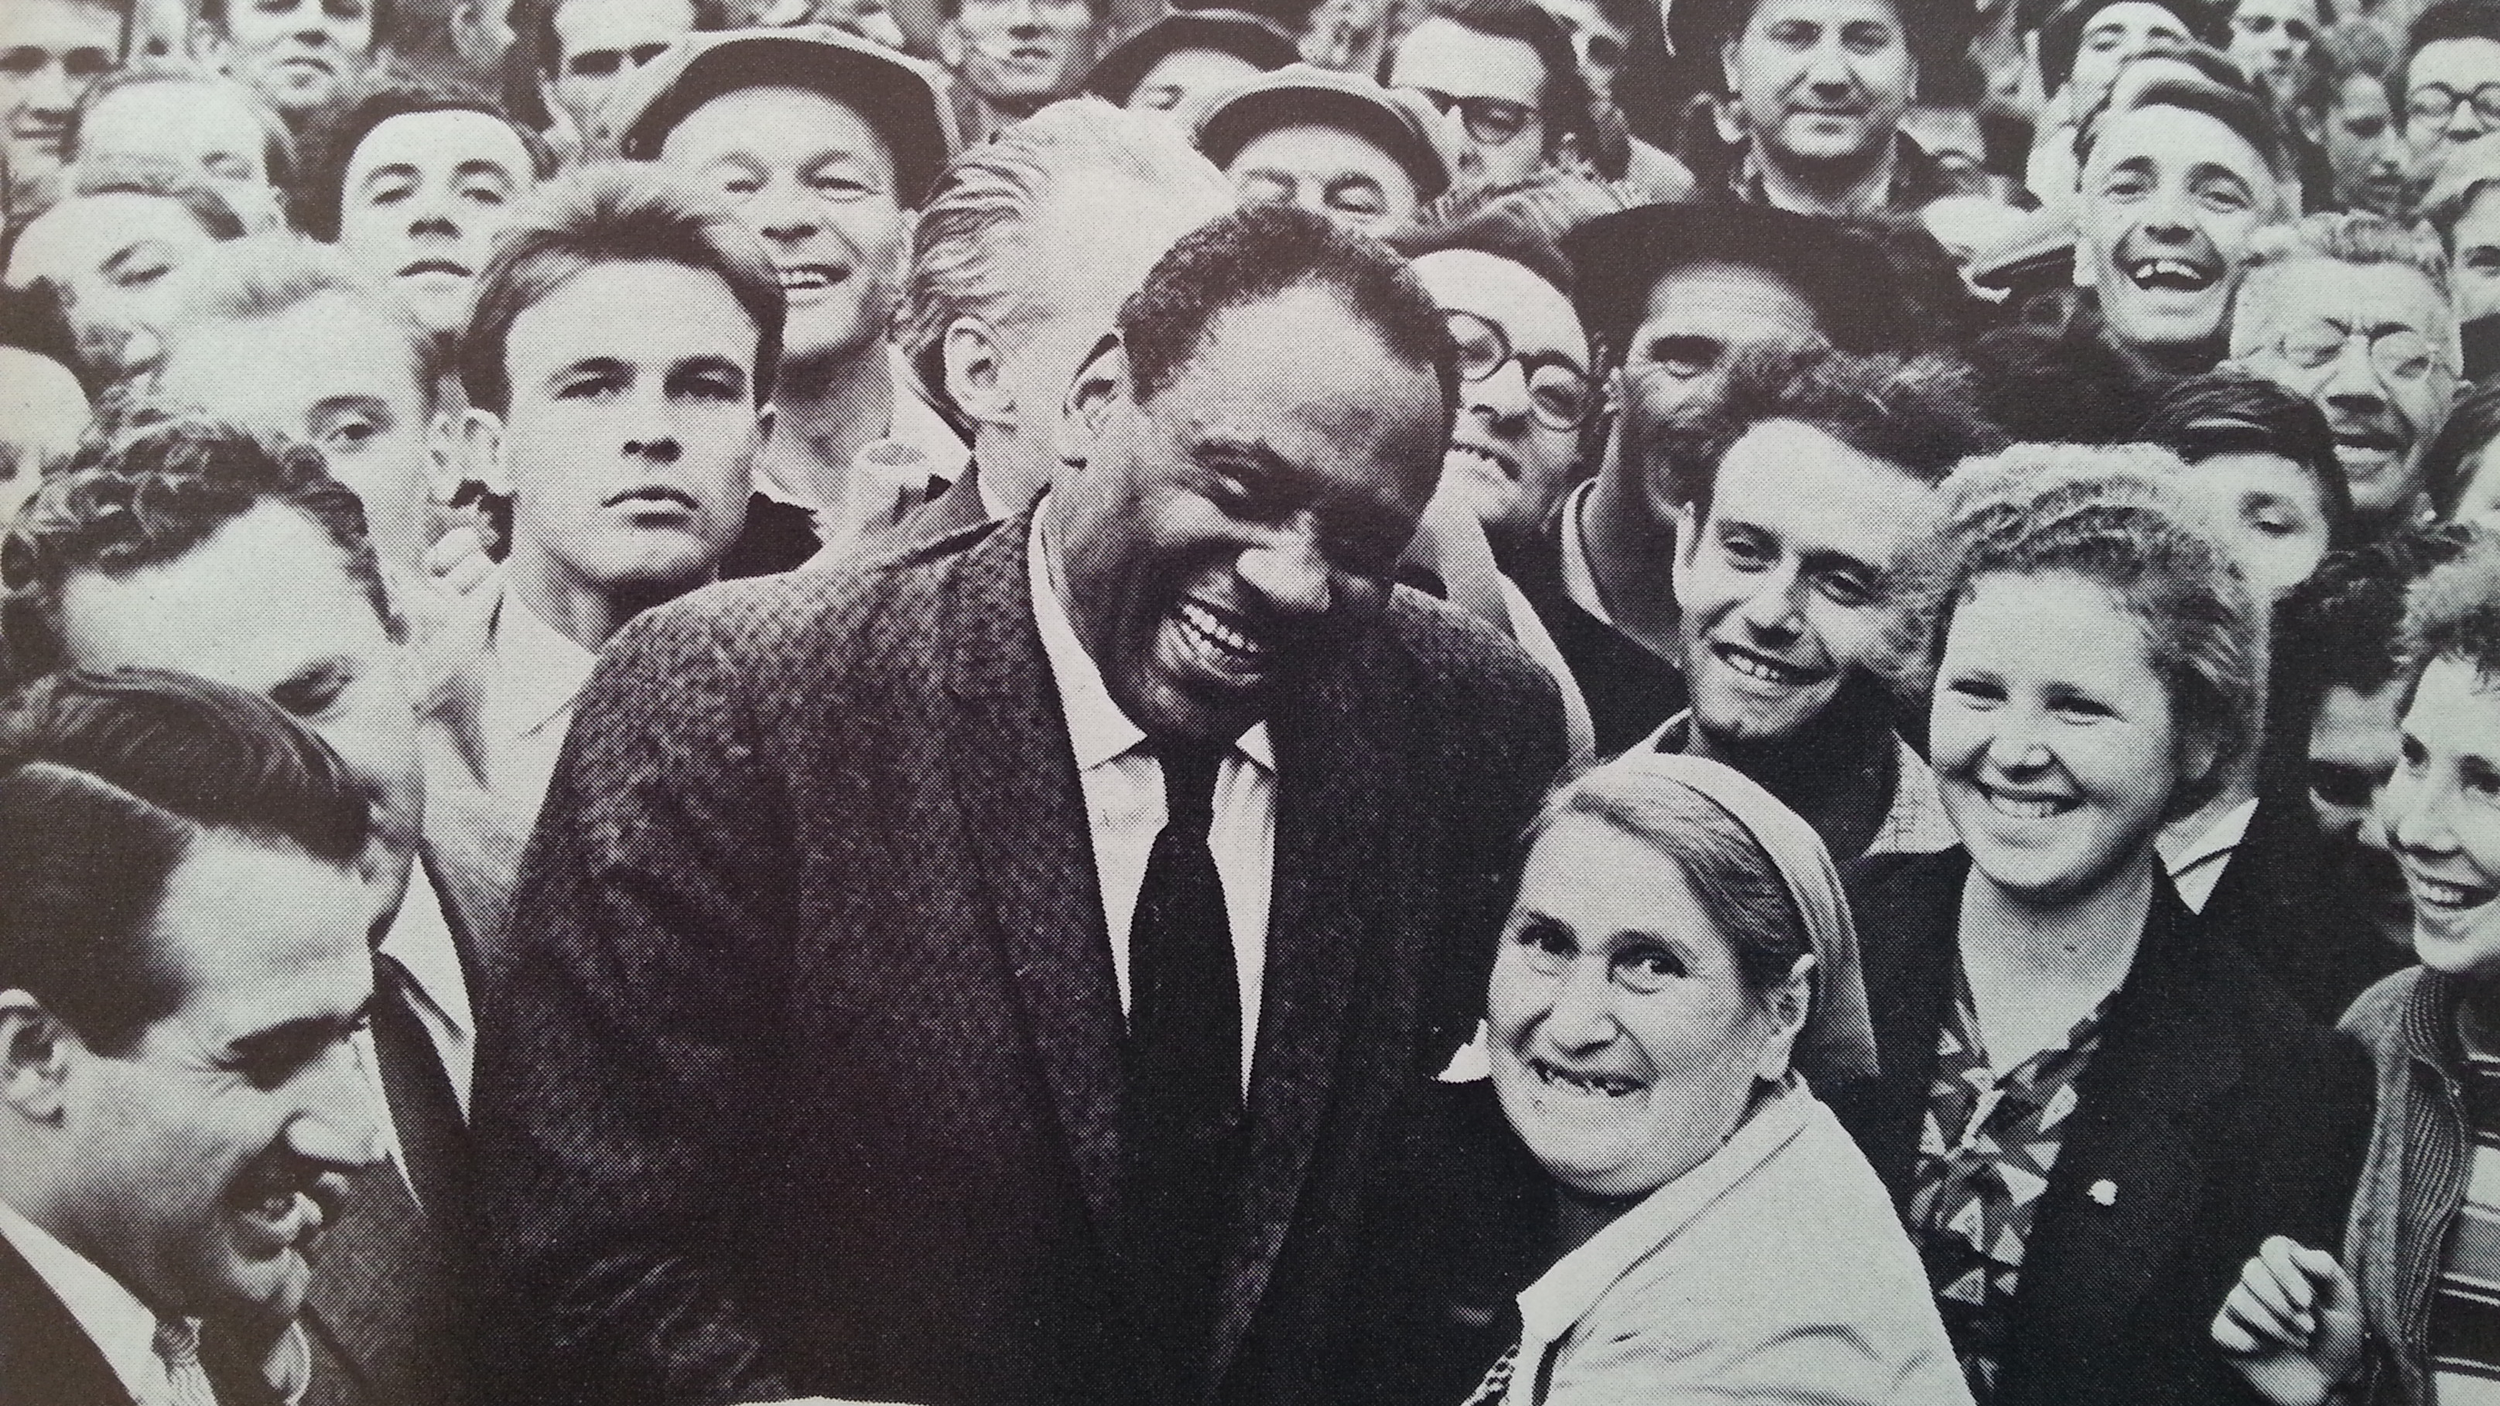 PAUL ROBESON - BEHIND THE CURTAIN   Feature documentary, 90/52 min., 2019 (in production)